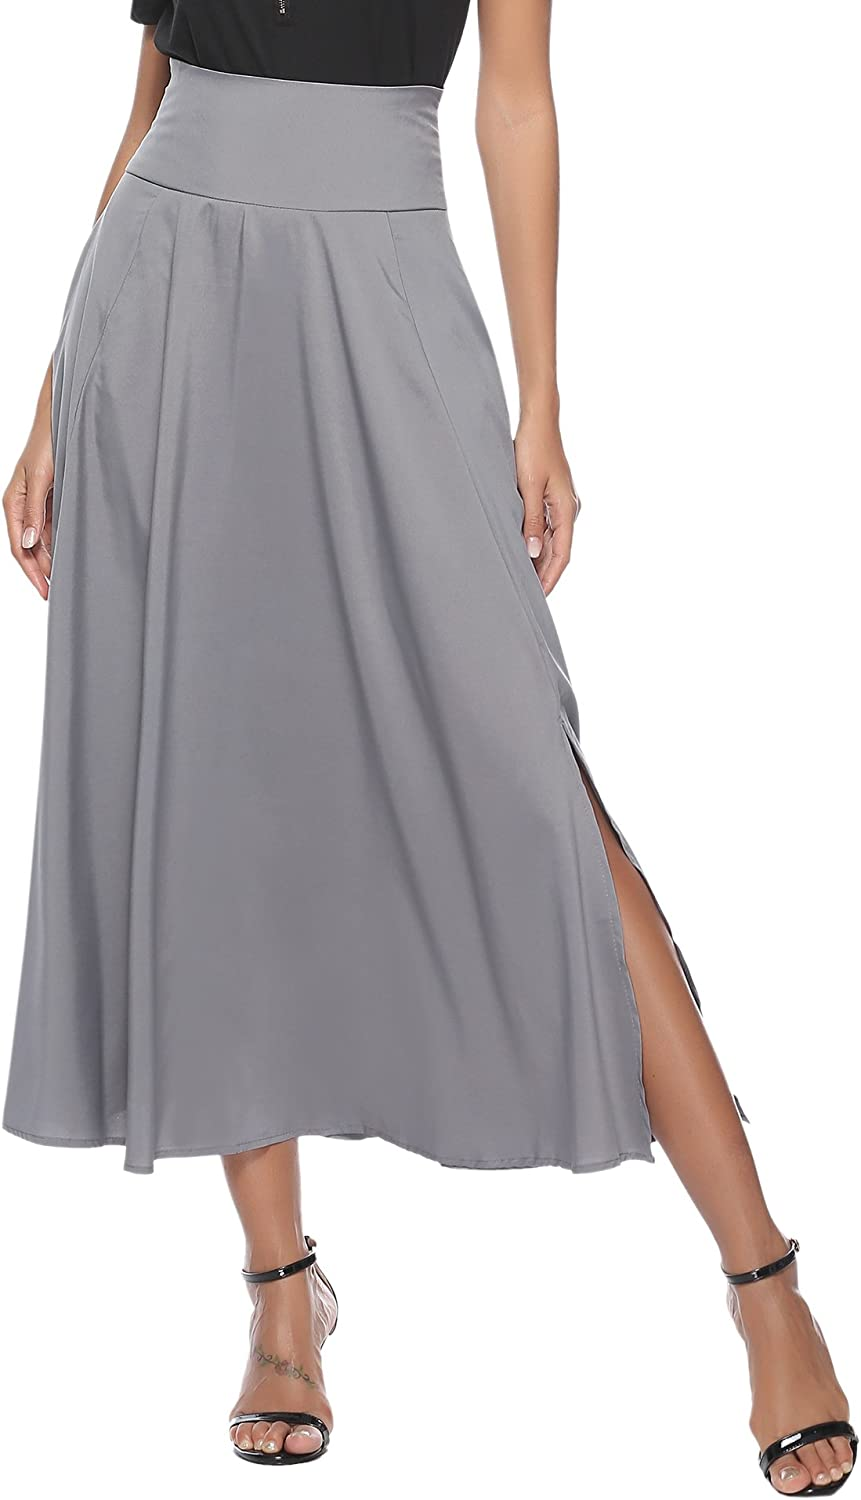 Aibrou Women High Waist ALine Front Slit Pleated Belted Maxi Skirt with Pocket